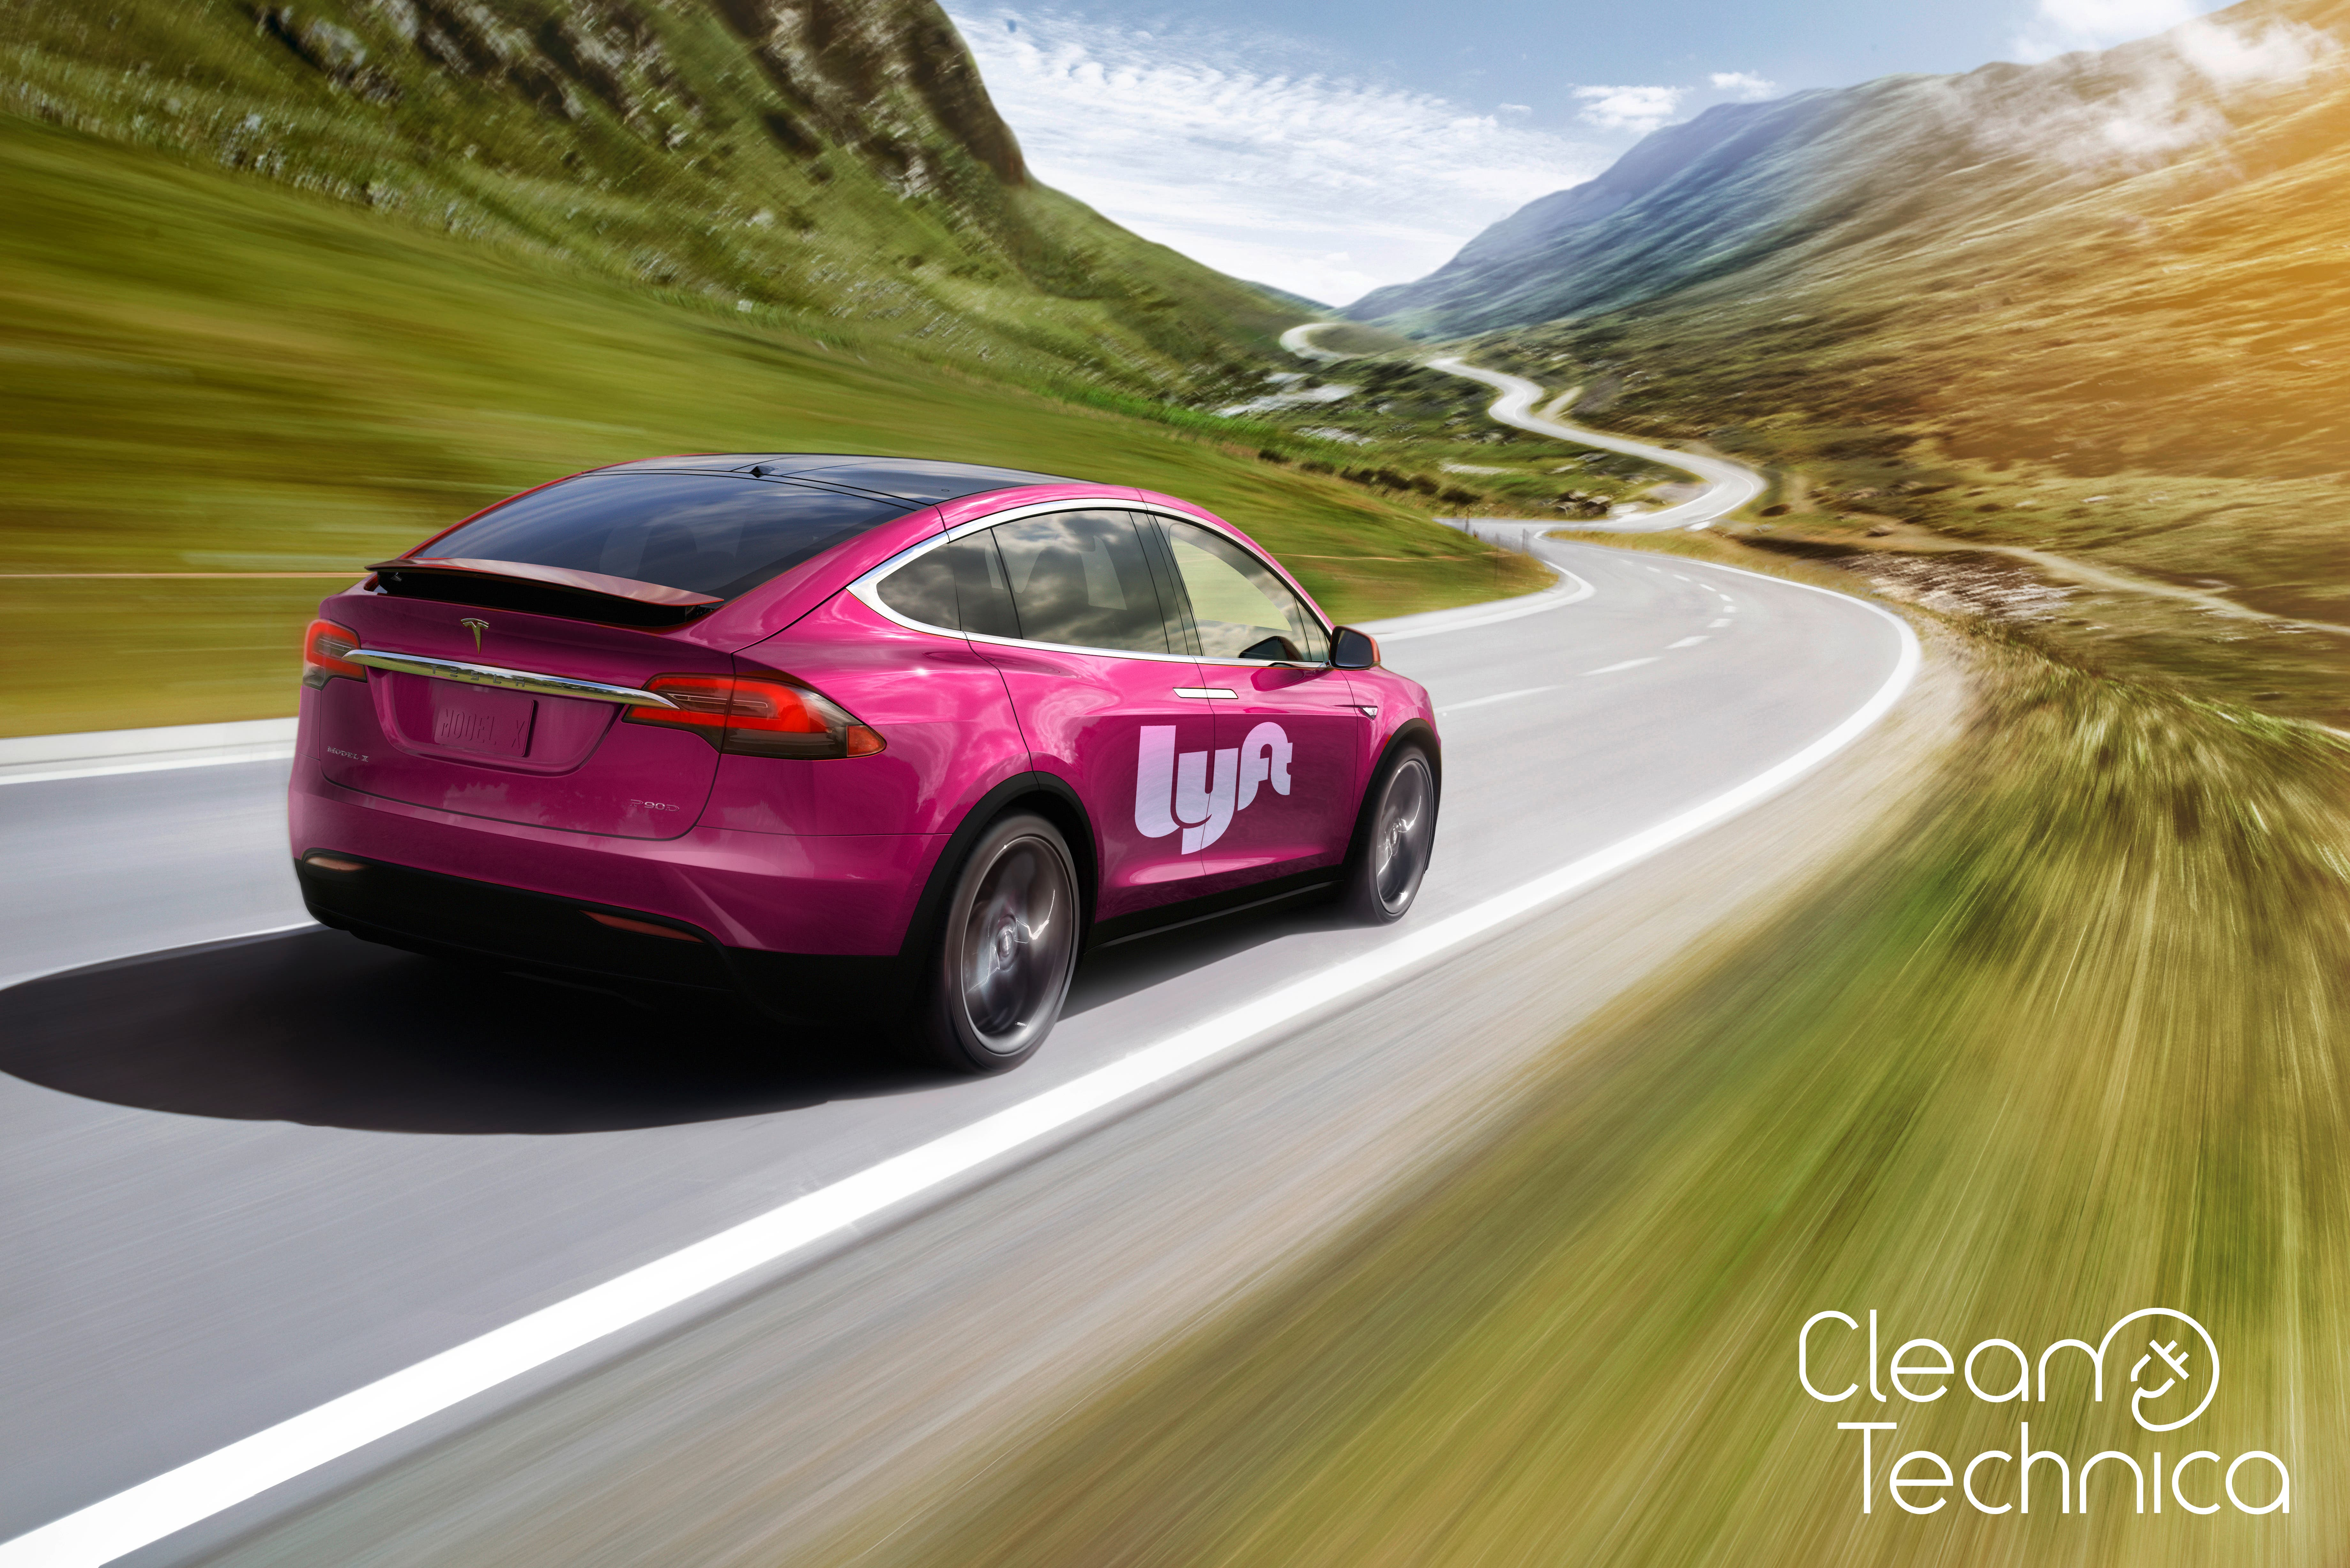 Lyft: 100% Electric Vehicles By 2030. CleanTechnica: Ya Think?